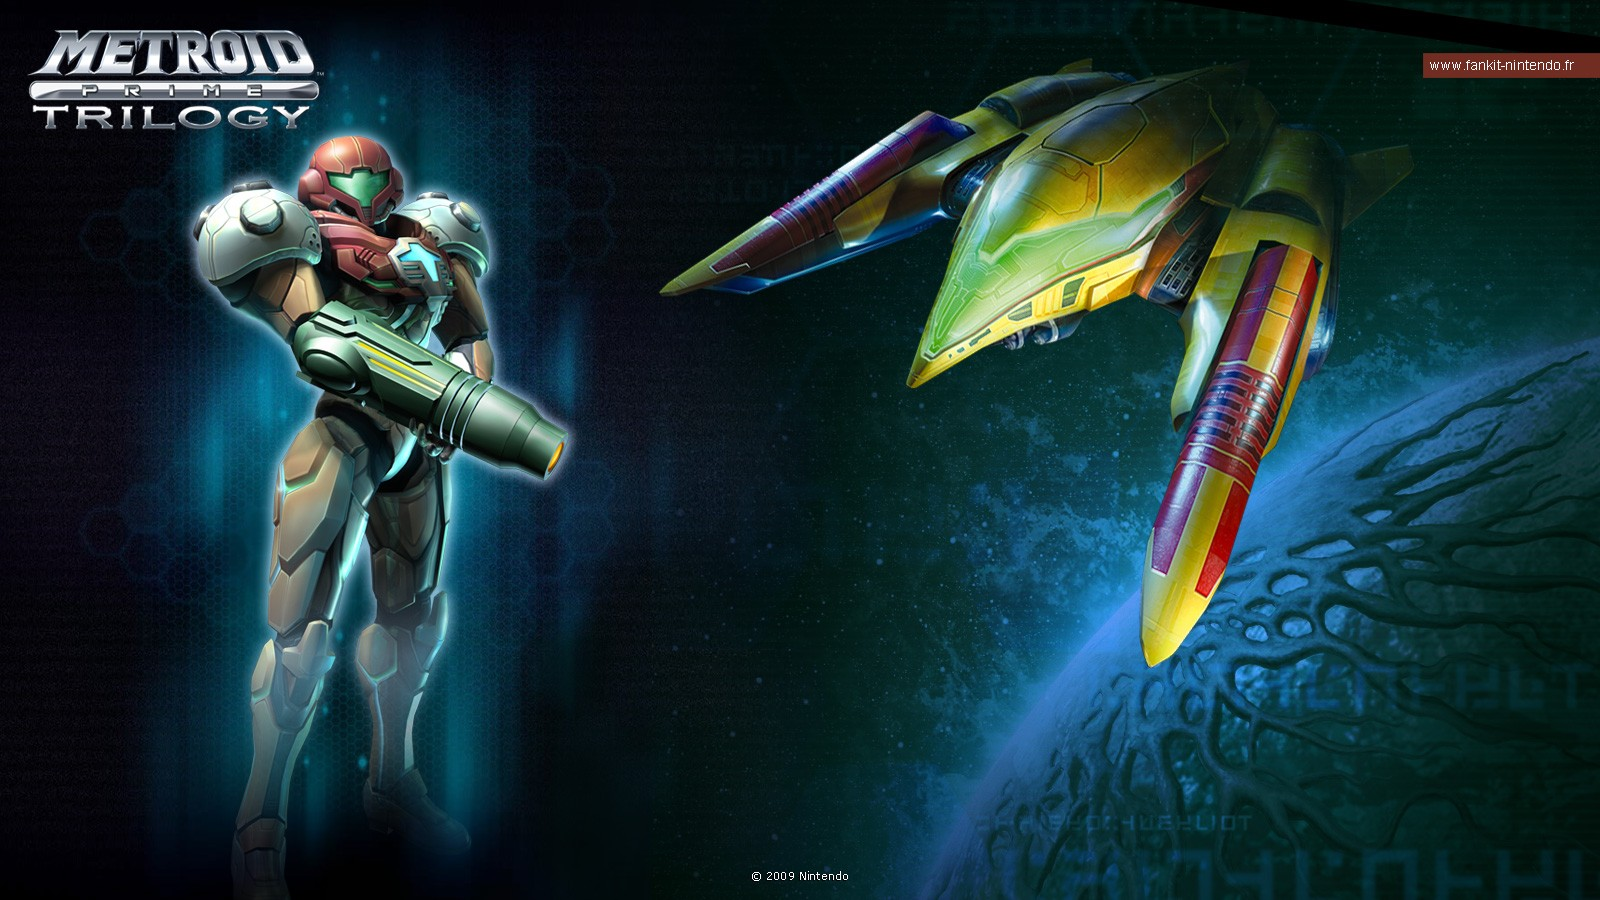 Metroid Iphone Wallpaper Metroid Prime Trilogy Wallpaper And Background Image